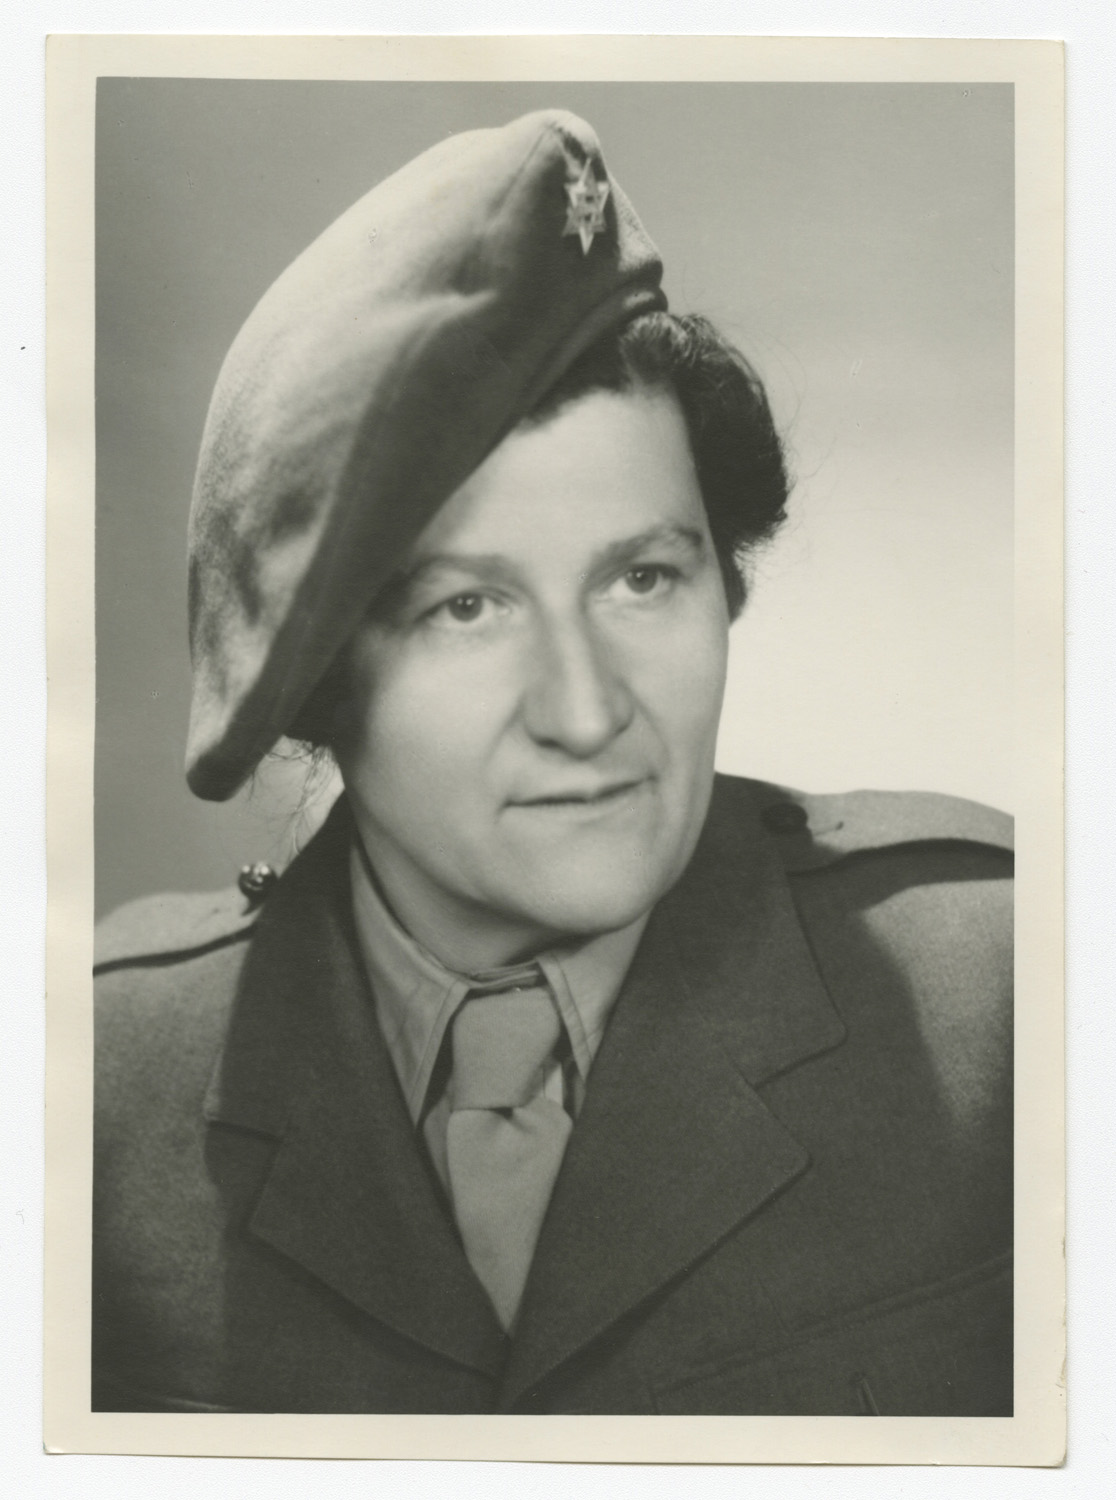 Marie Malachowski in her British Army uniform after the war.